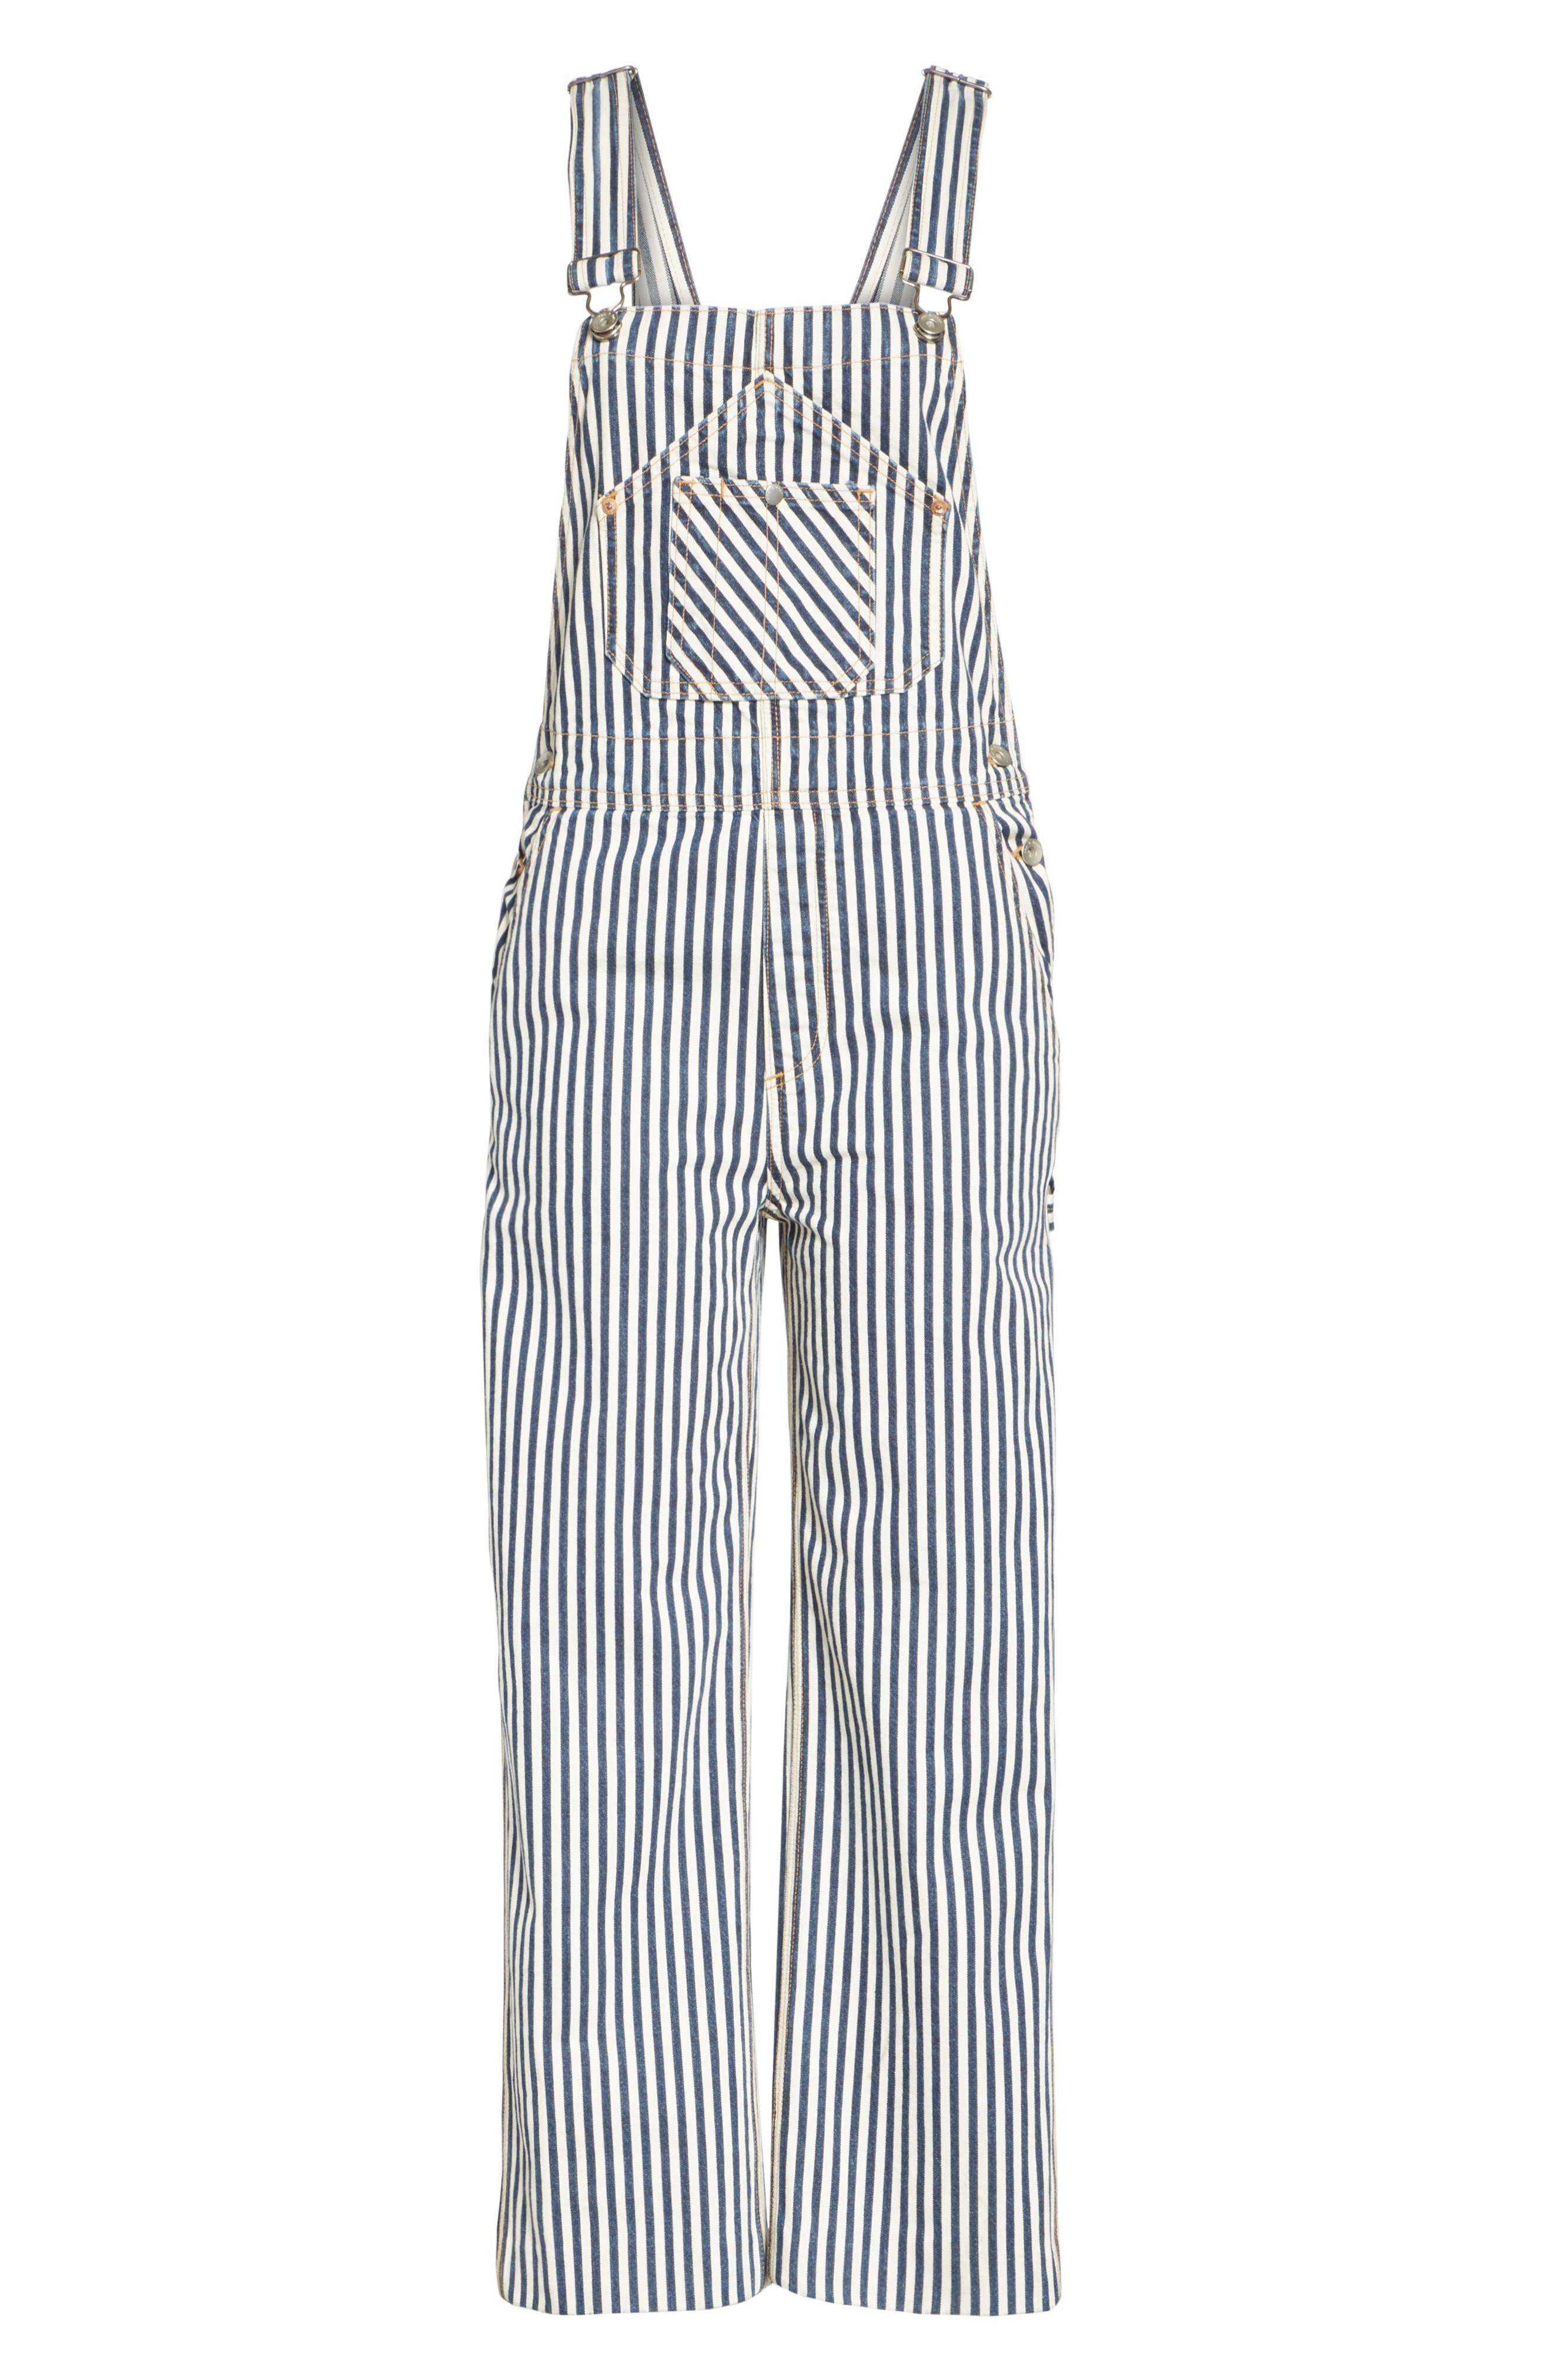 Patched Dungarees,                             Alternate thumbnail 6, color,                             429